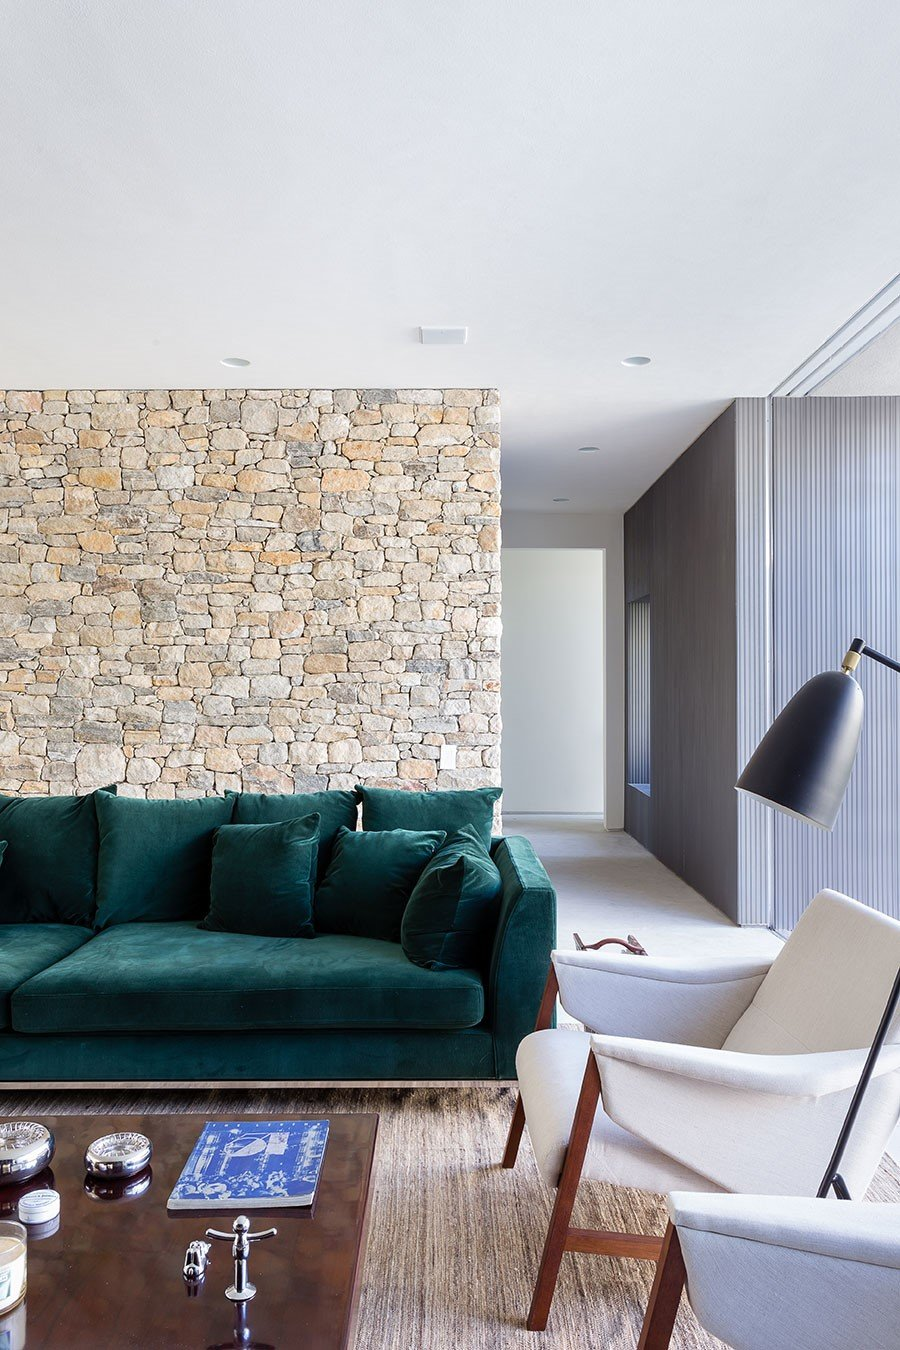 Lara House is a generous and light-filled home in Sao Paulo - by Felipe Hess (3)